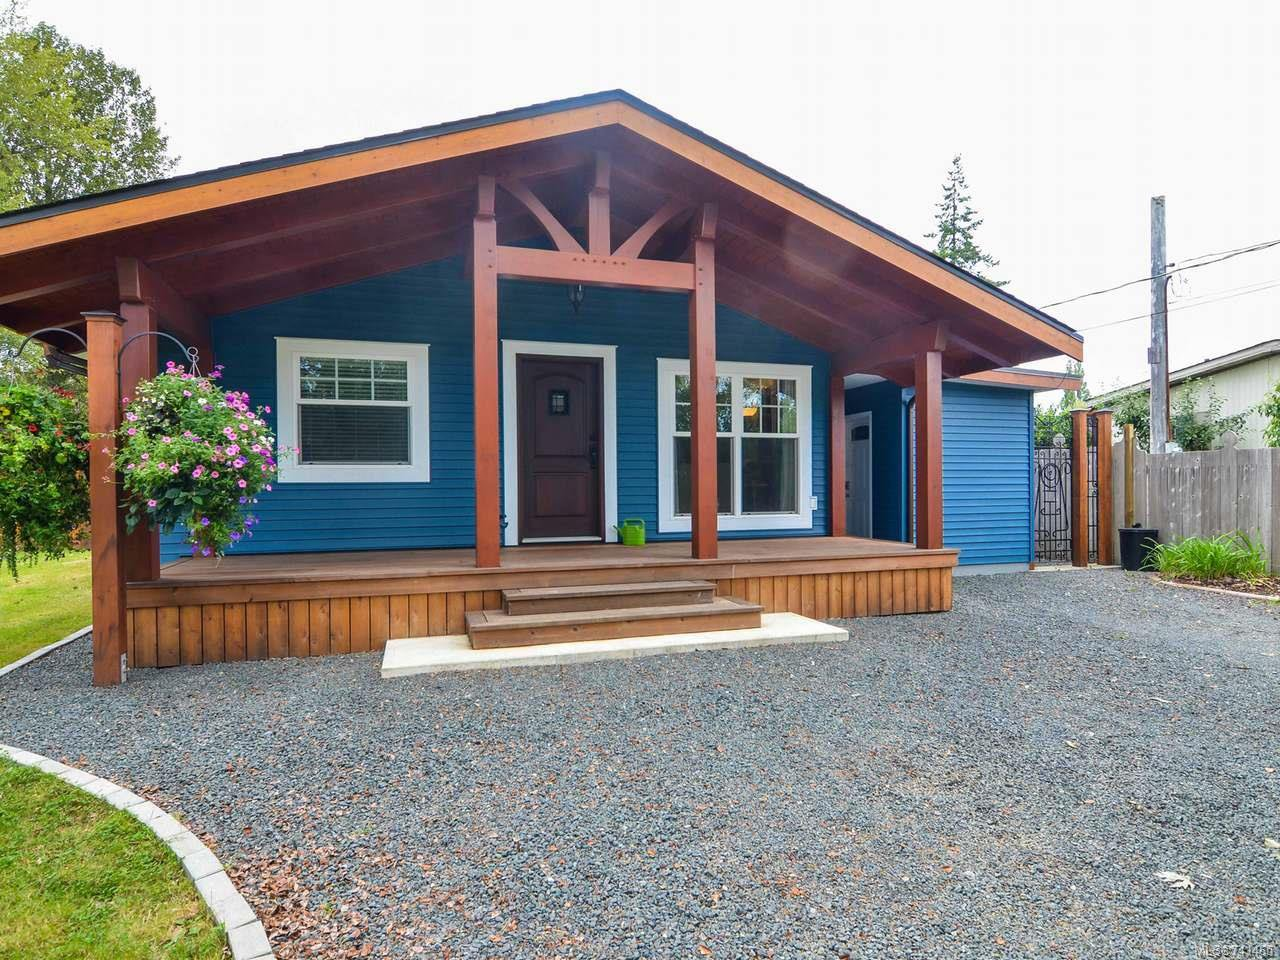 Main Photo: 280 Petersen Rd in CAMPBELL RIVER: CR Campbell River West House for sale (Campbell River)  : MLS®# 741465